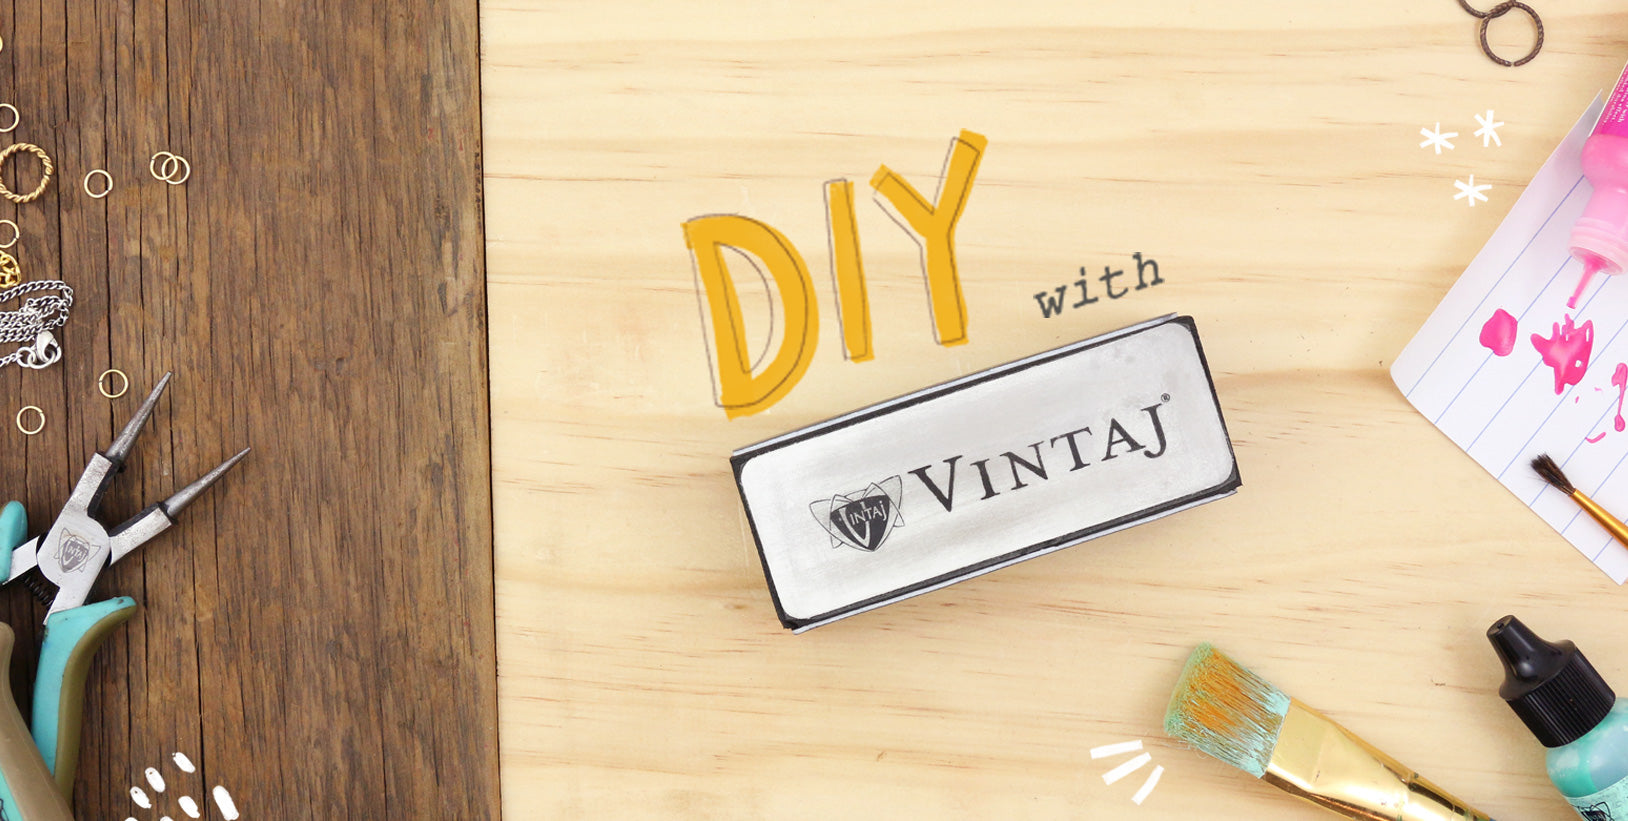 DIY with Vintaj